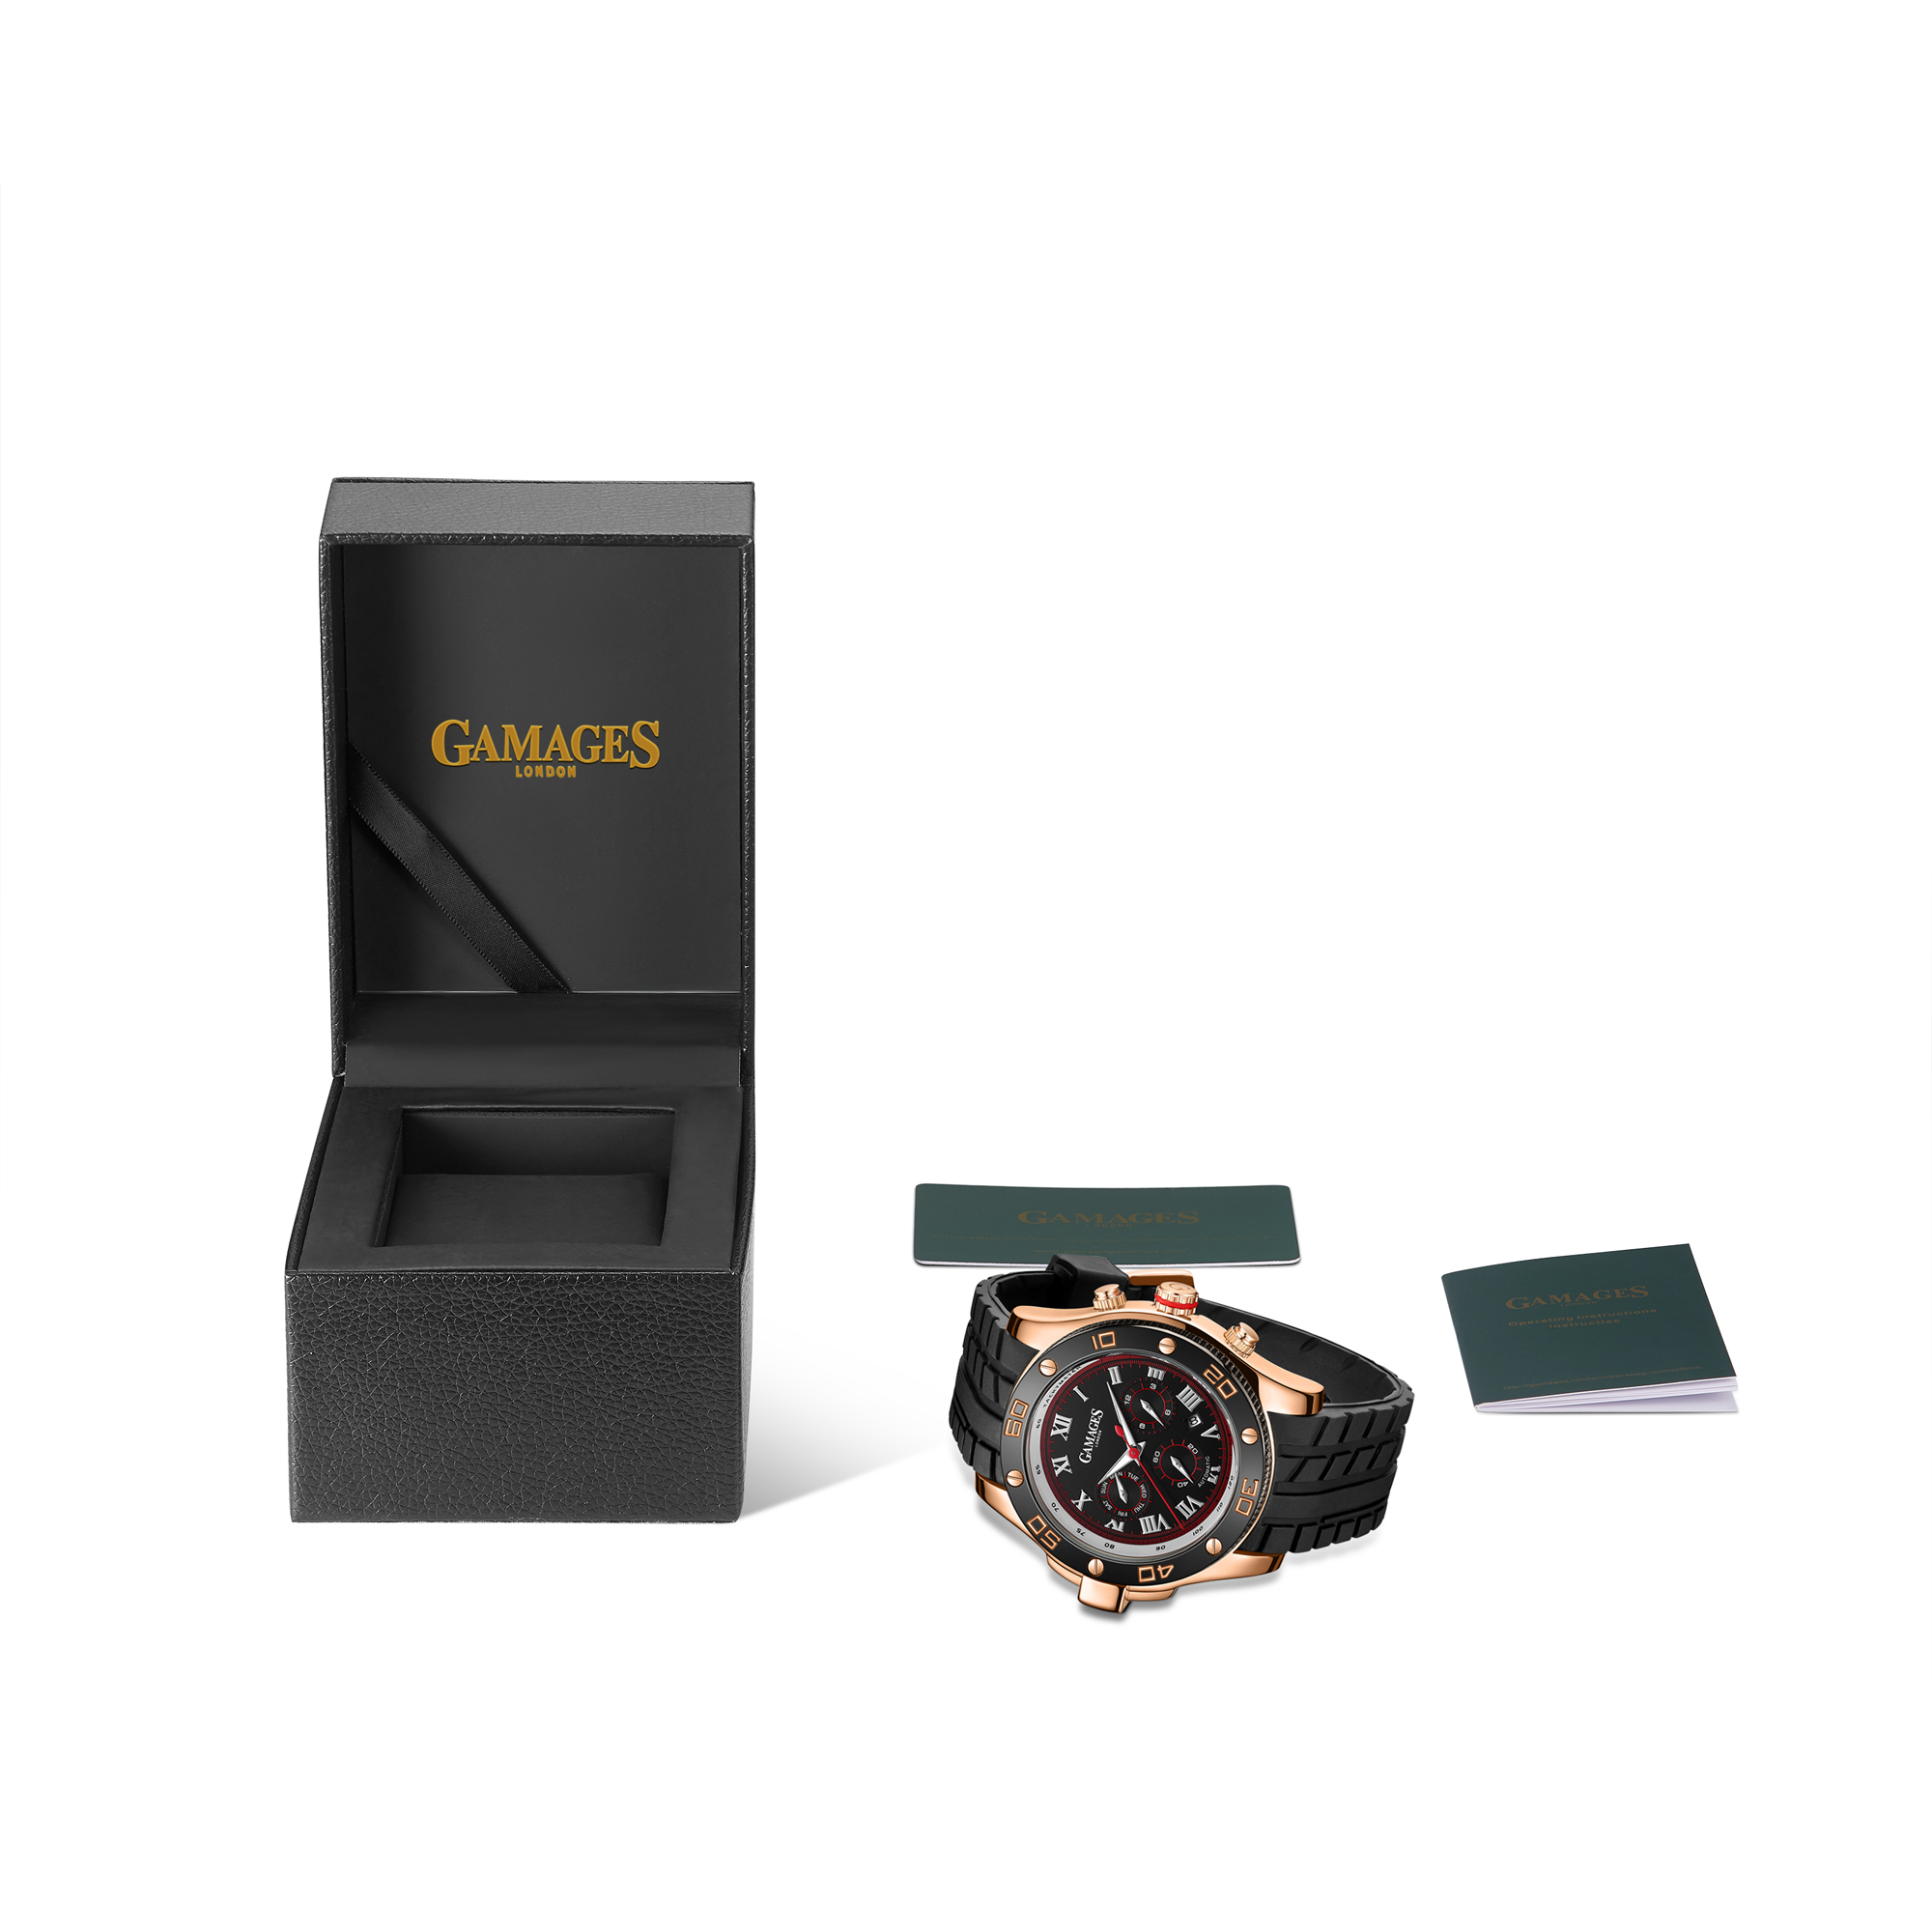 LLtd Edition Hand Assembled Gamages Driver Automatic Rose Gold – 5 Year Warranty & Free Delivery - Image 2 of 5